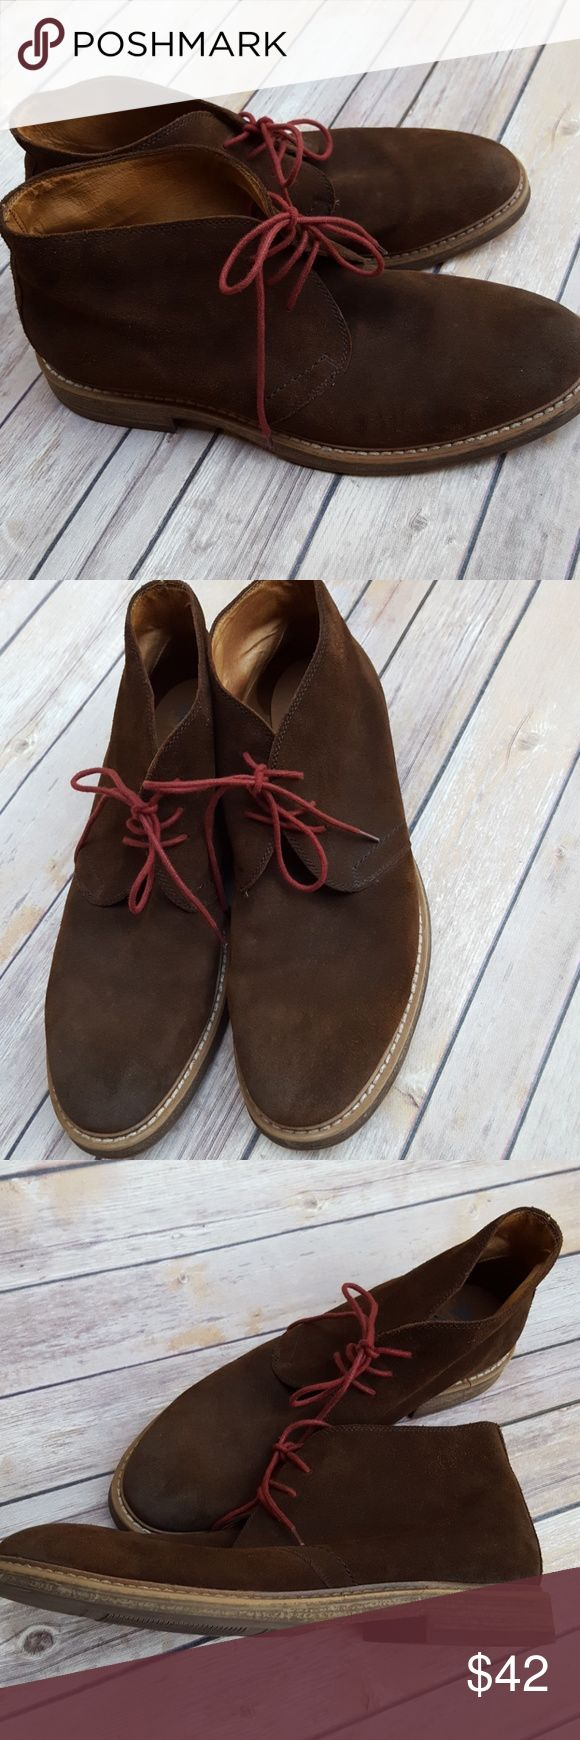 Men's 1901 Brown Suede Boots sz 13 Men's 1901 Brown Suede Boots sz 13. Leather Upper, gently used. 1901 Shoes Chukka Boots